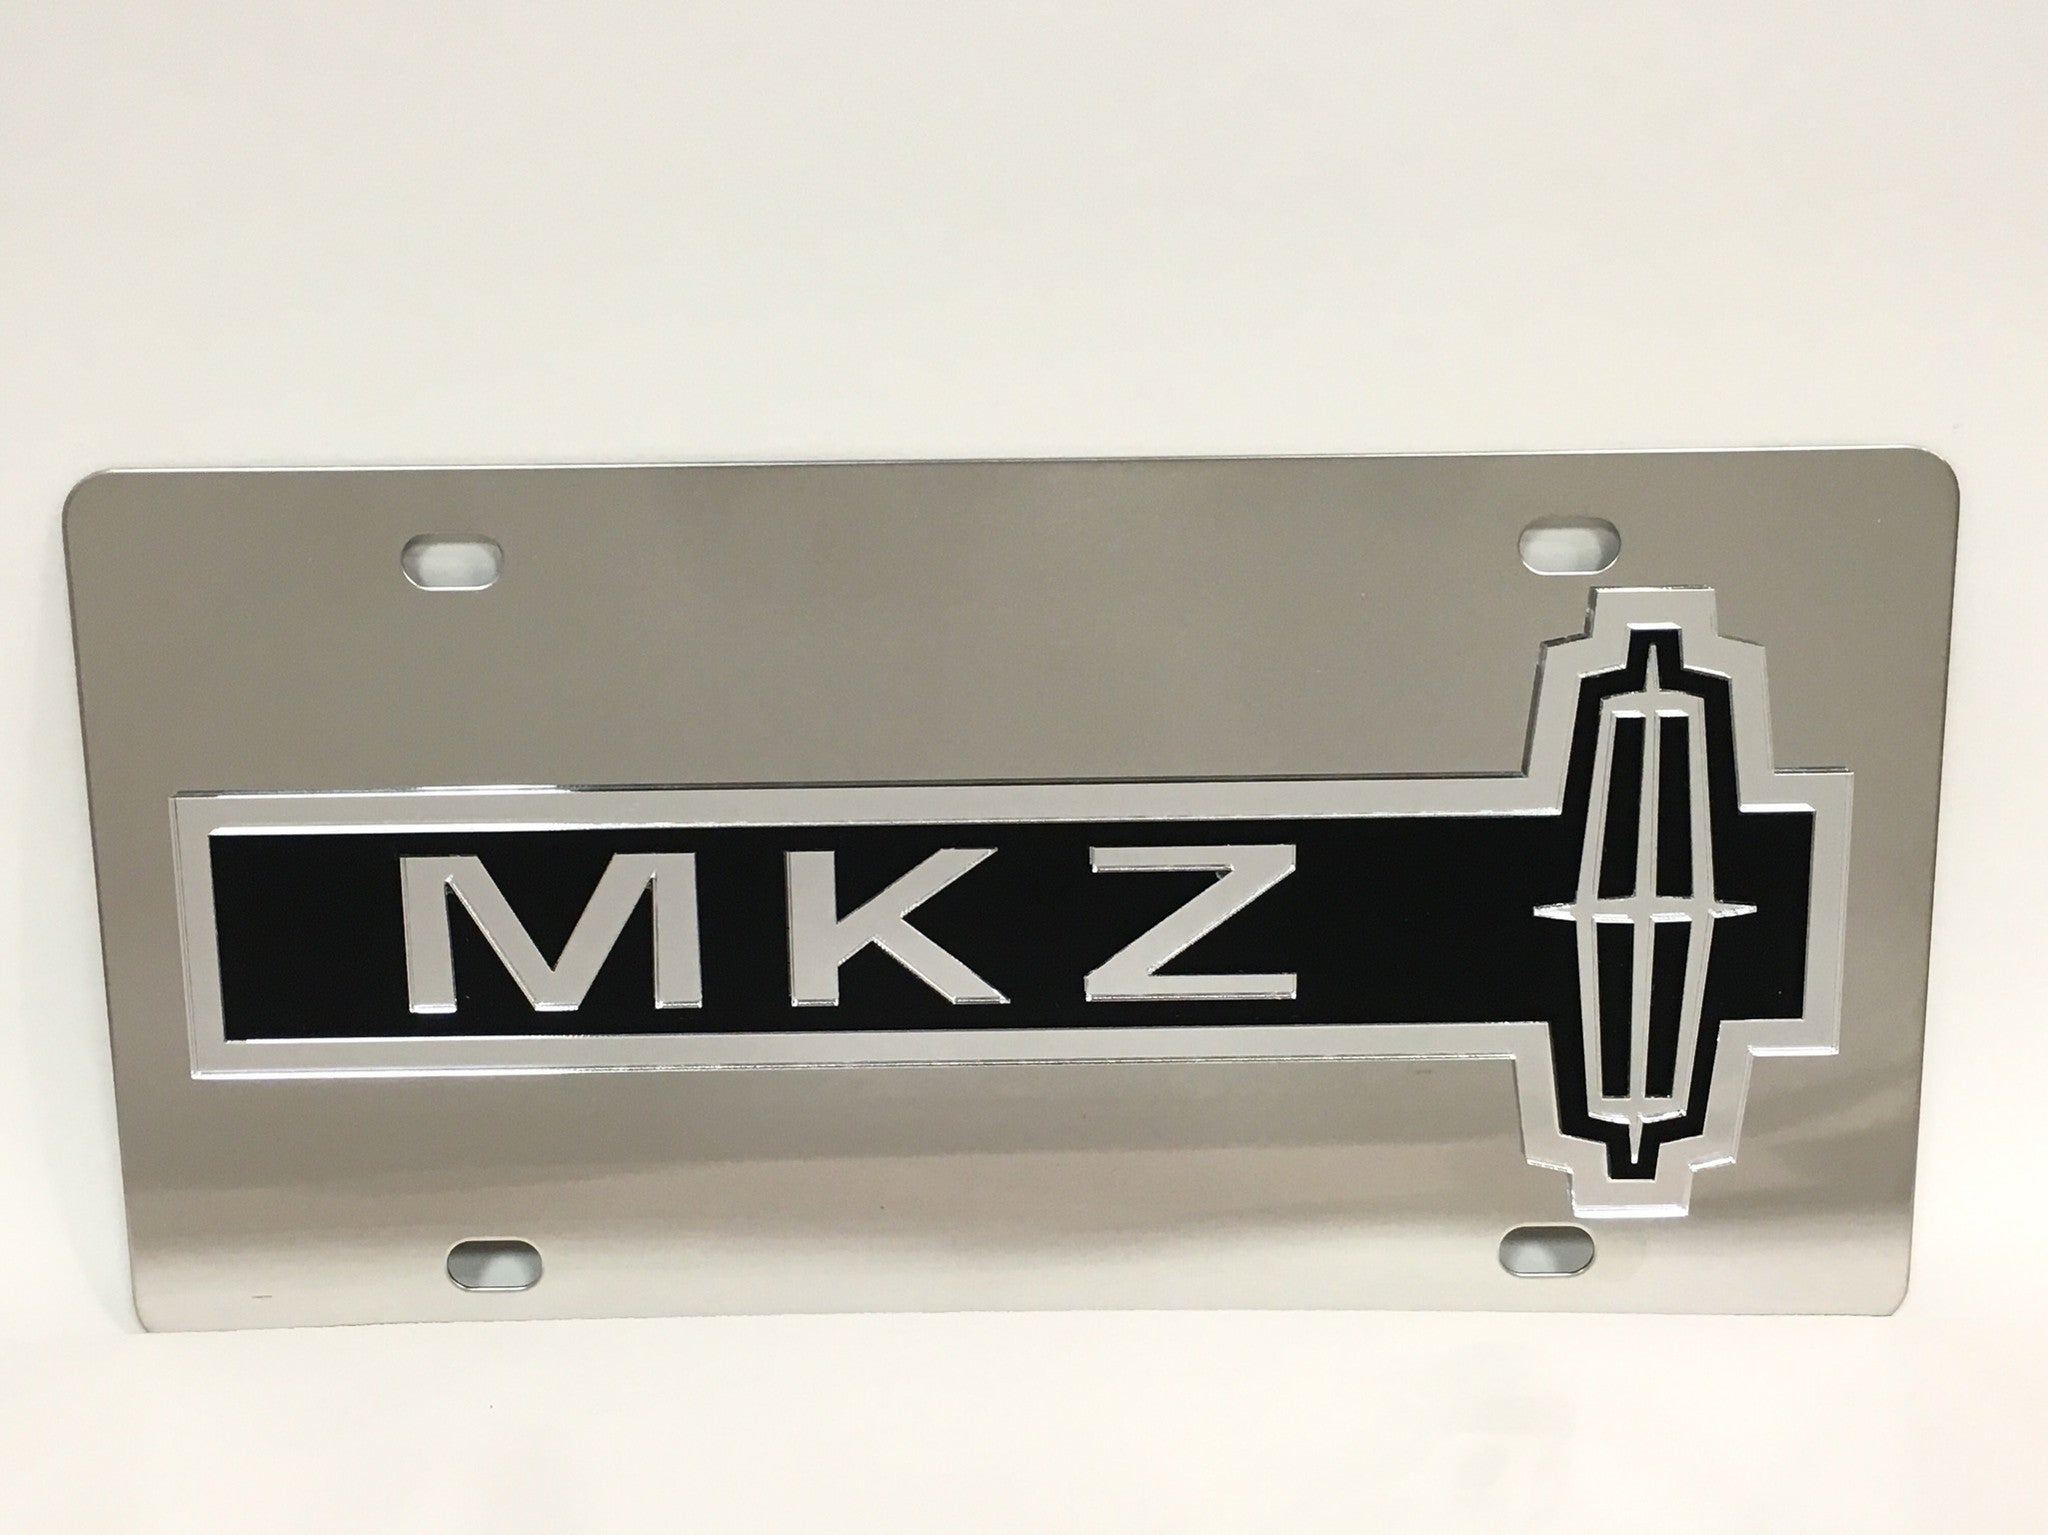 Lincoln MKZ Stainless Steel License Plate